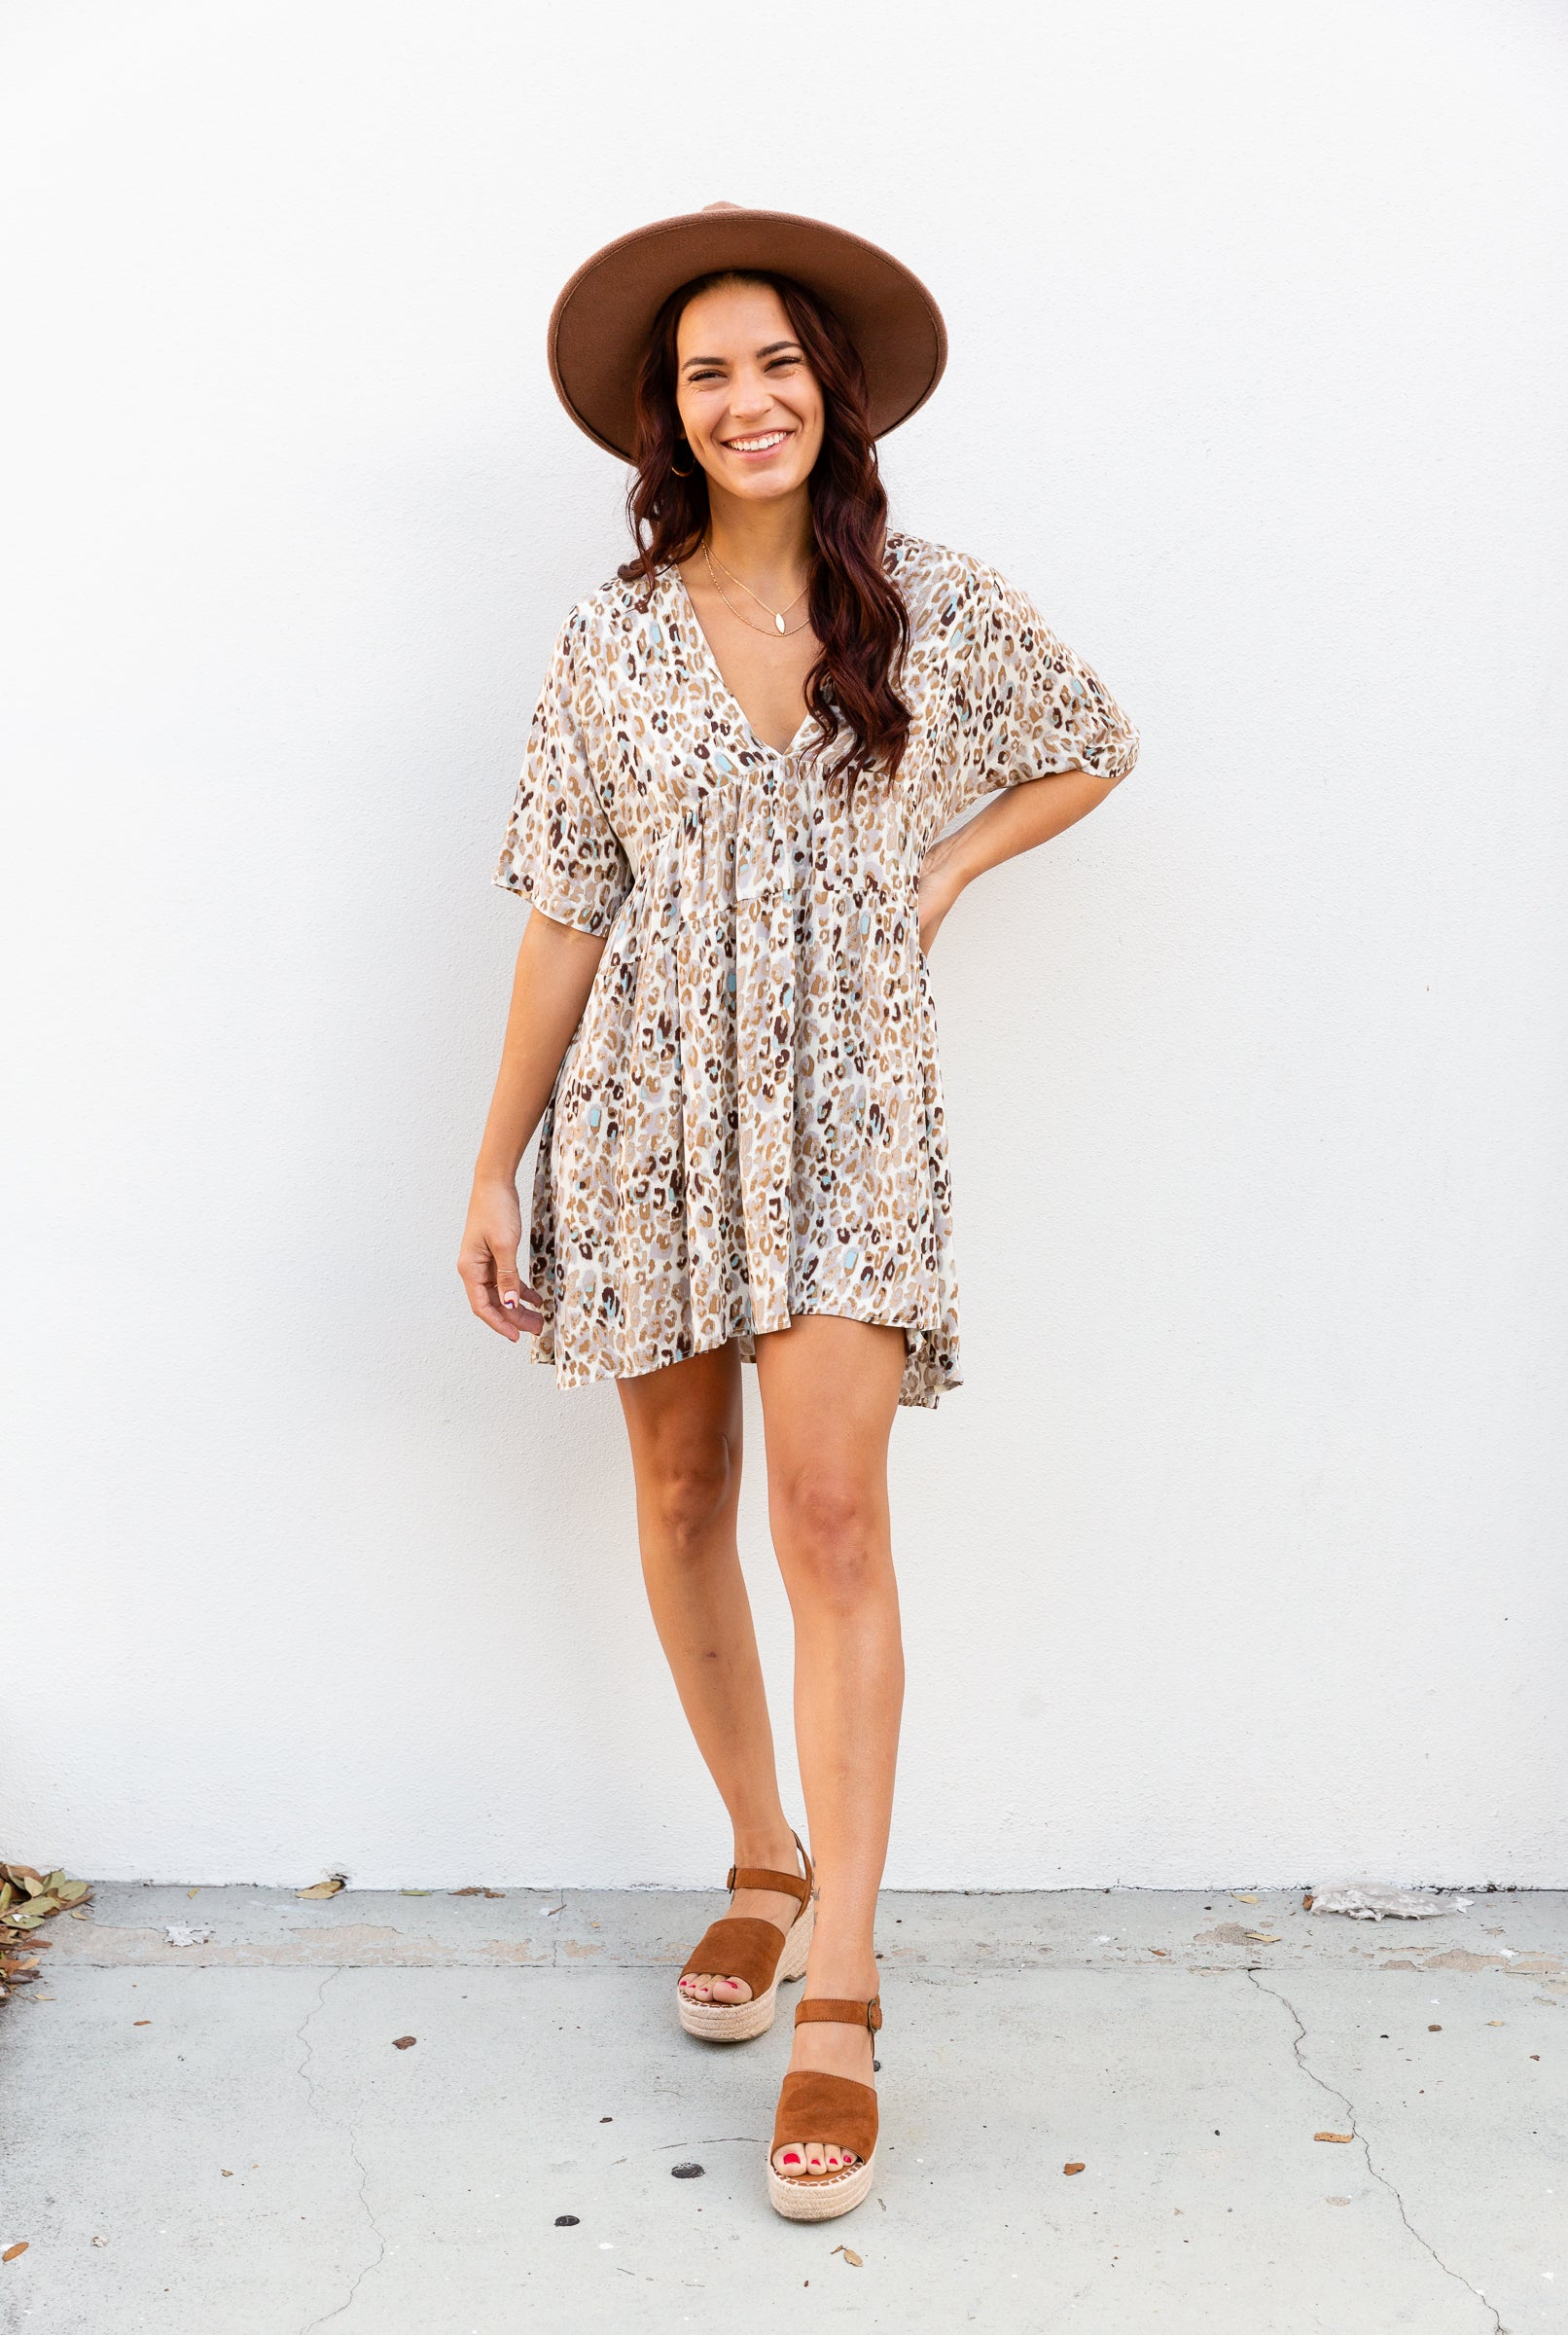 Brown and taupe leopard prints cover the fabric. It has short sleeves attach to a v-neckline on an oversized and relaxed-fit bodice before flowing down into a baby doll style skirt silhouette.